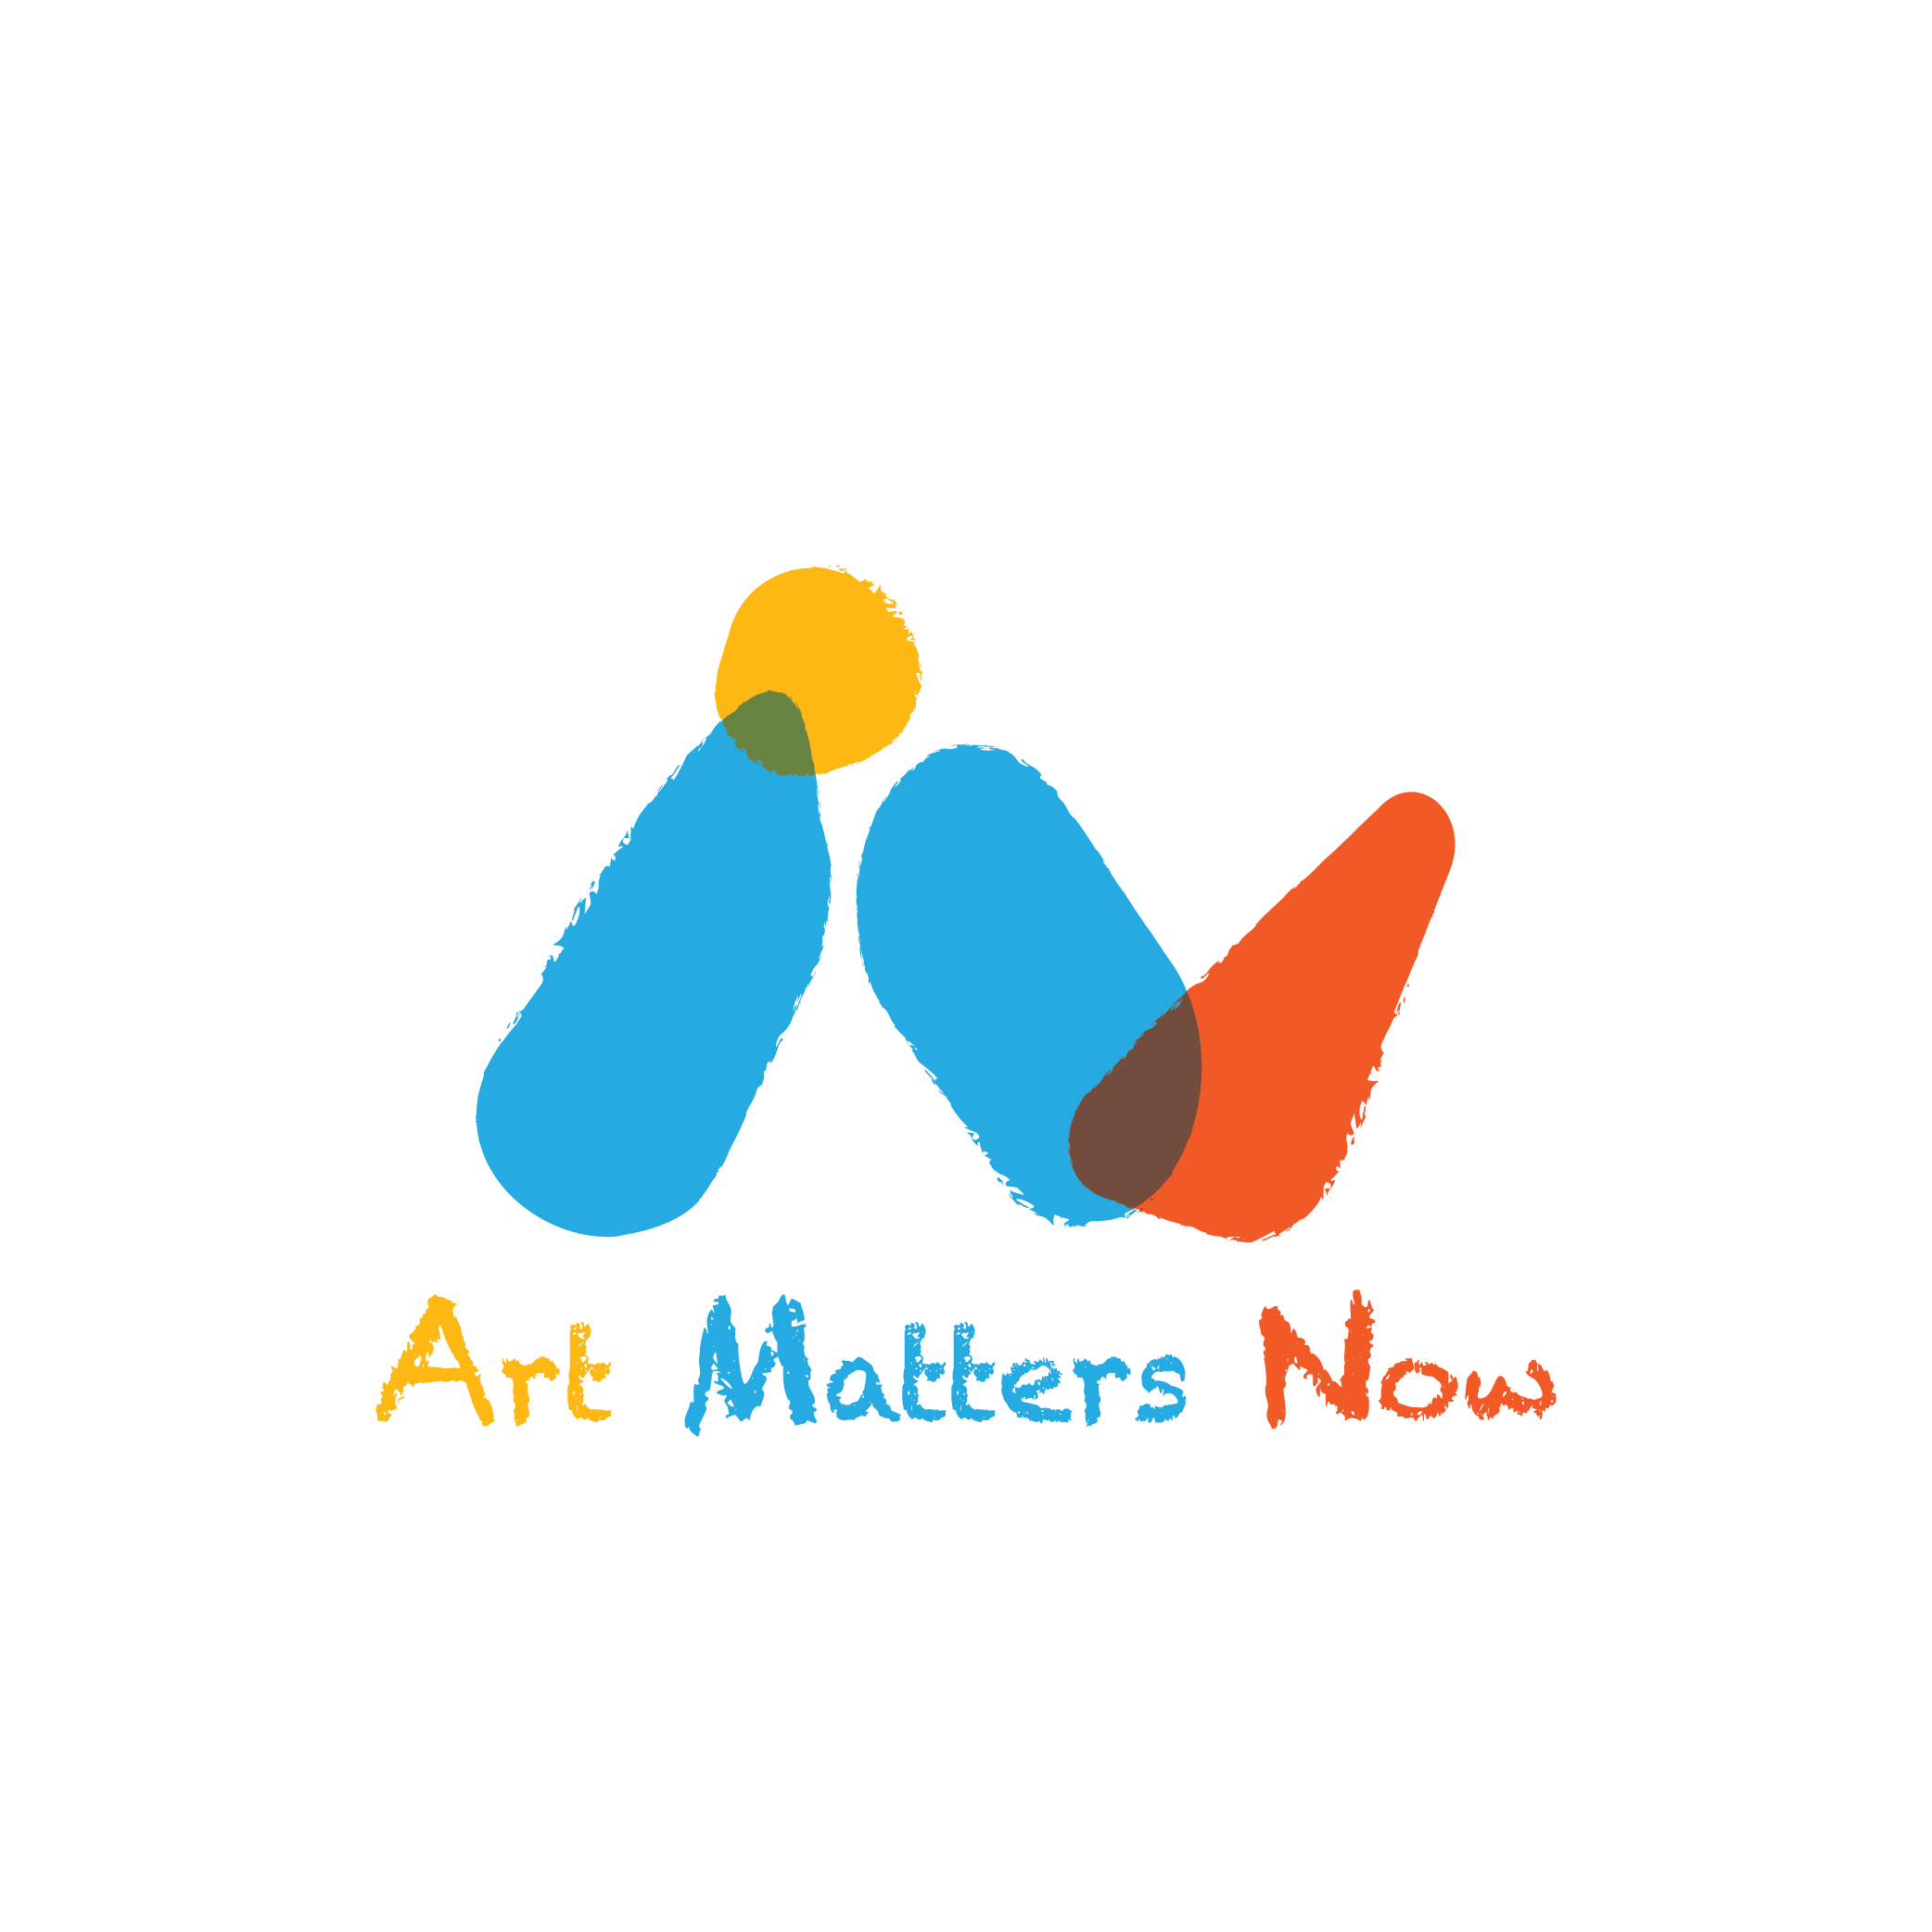 Coloured logo of Art Matters Now